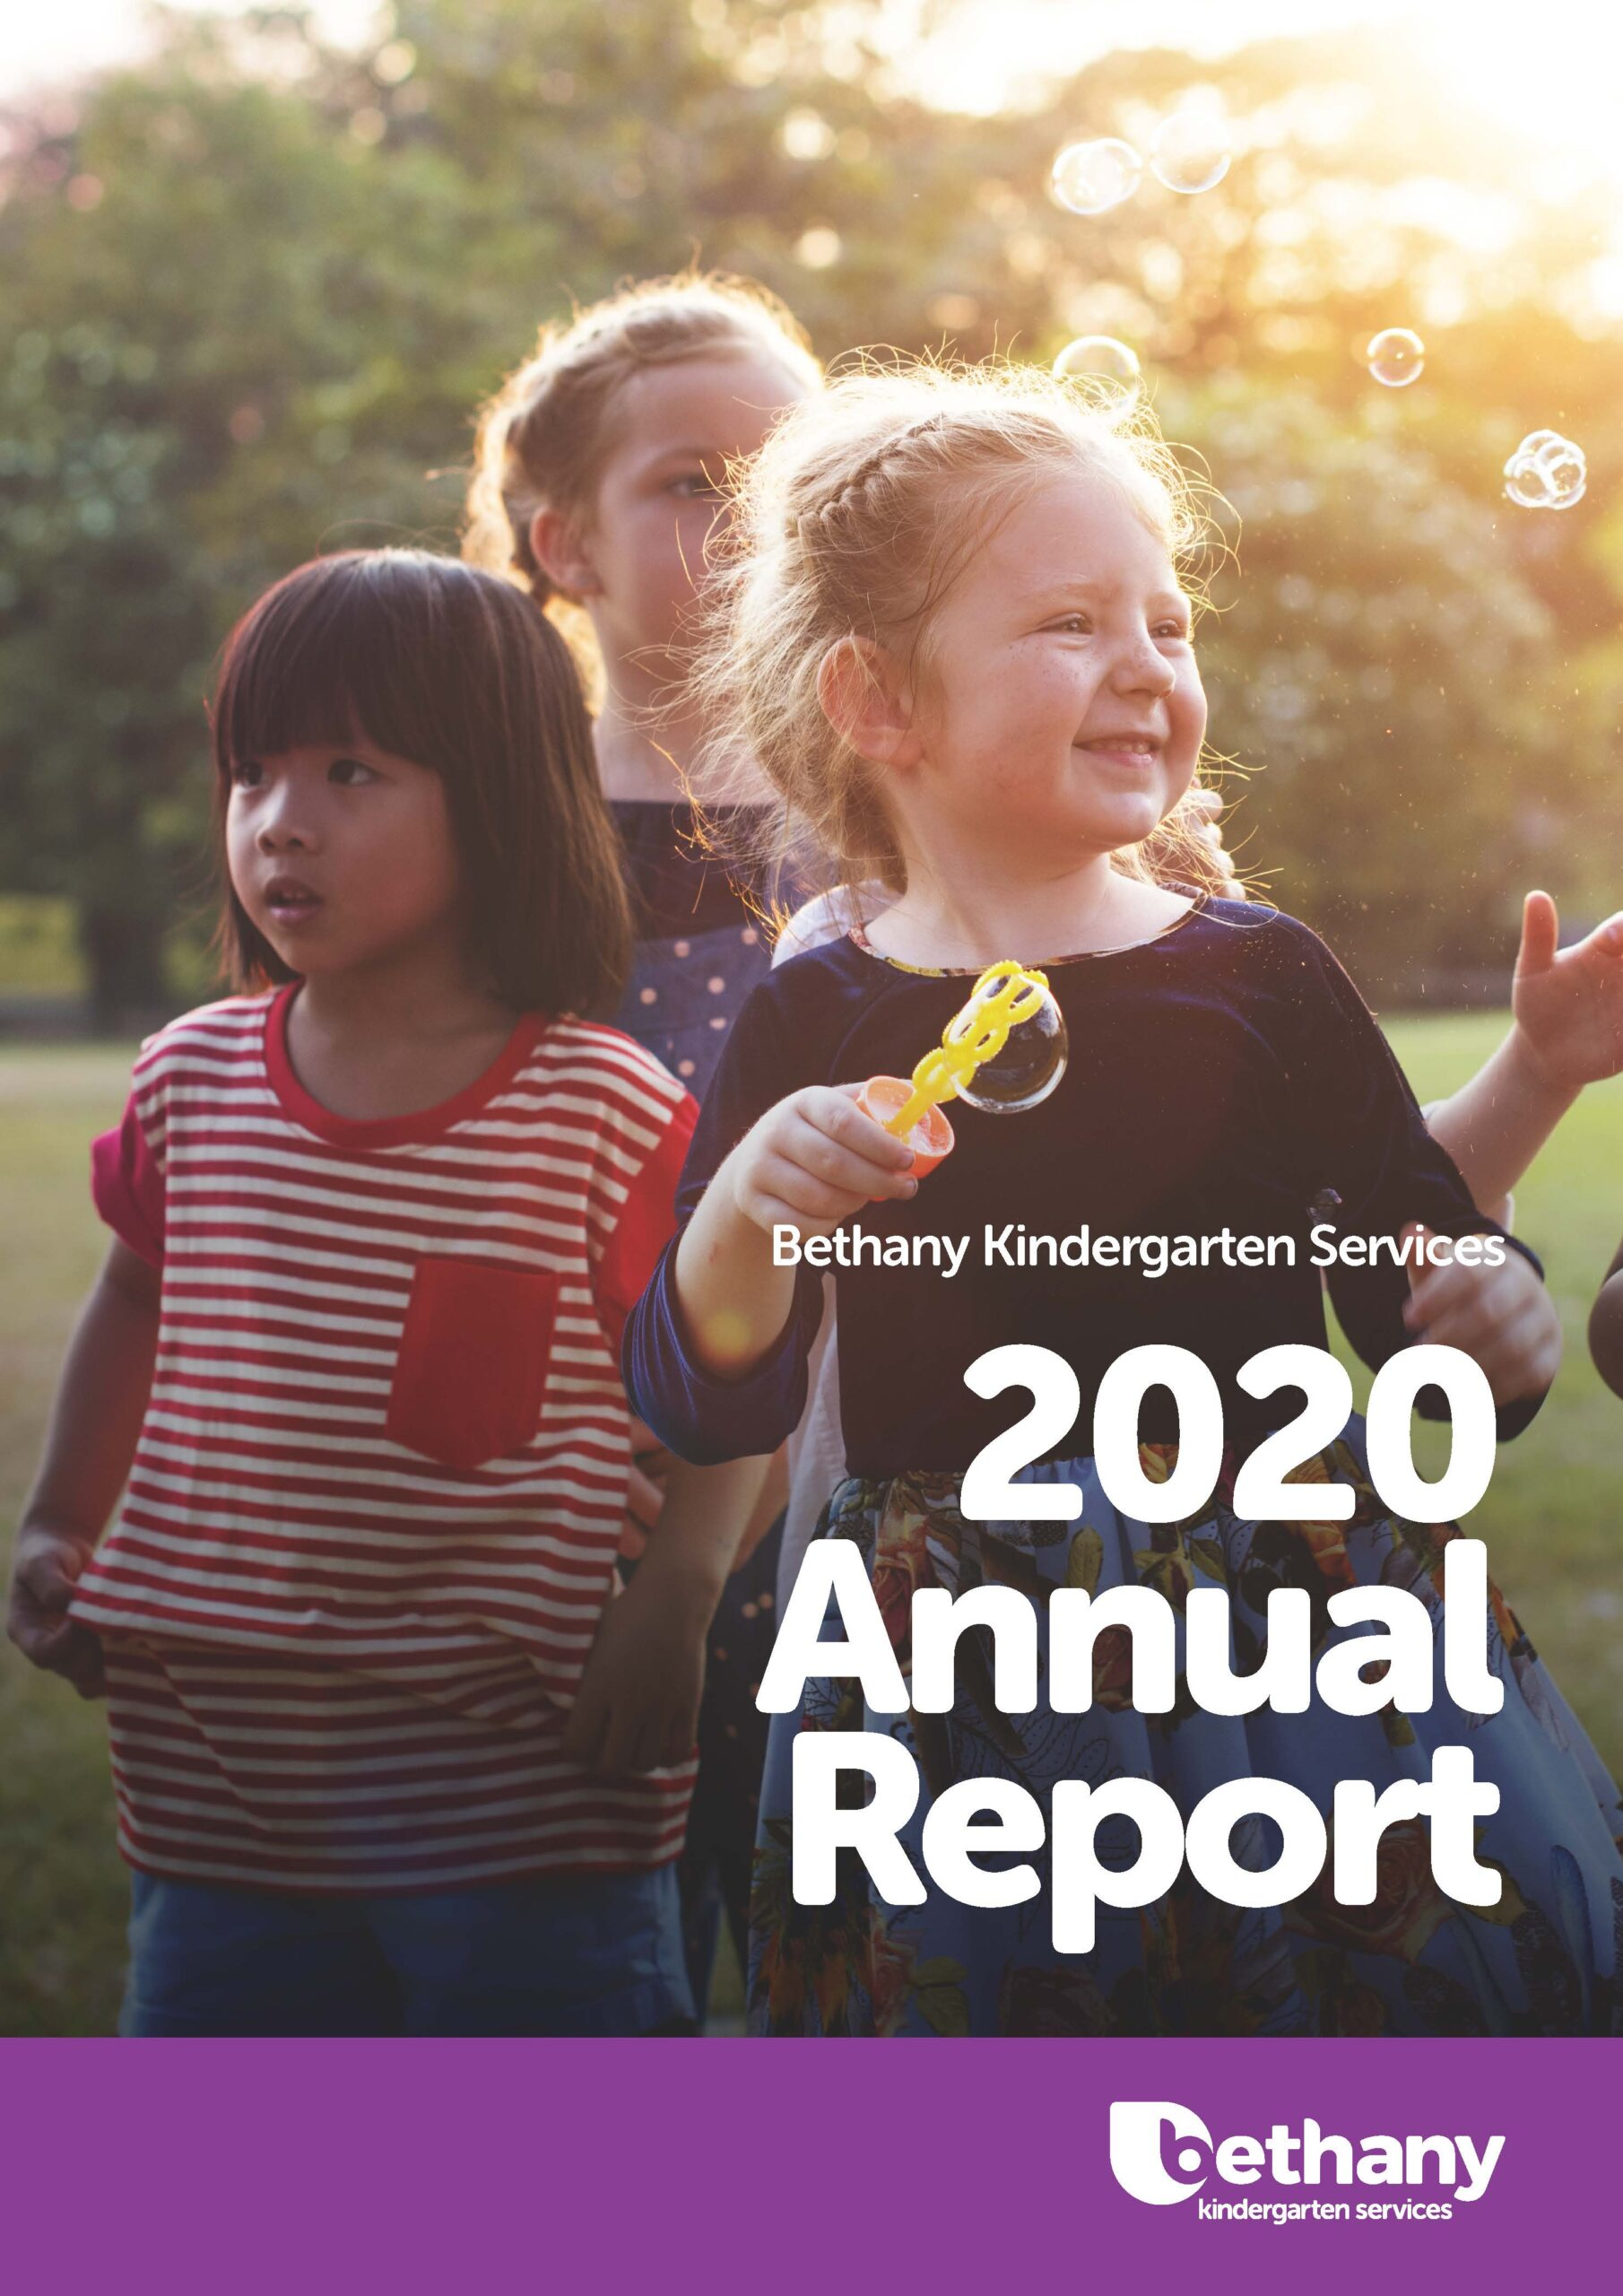 Front cover of the 2020 Bethany Kindergarten Services annual report